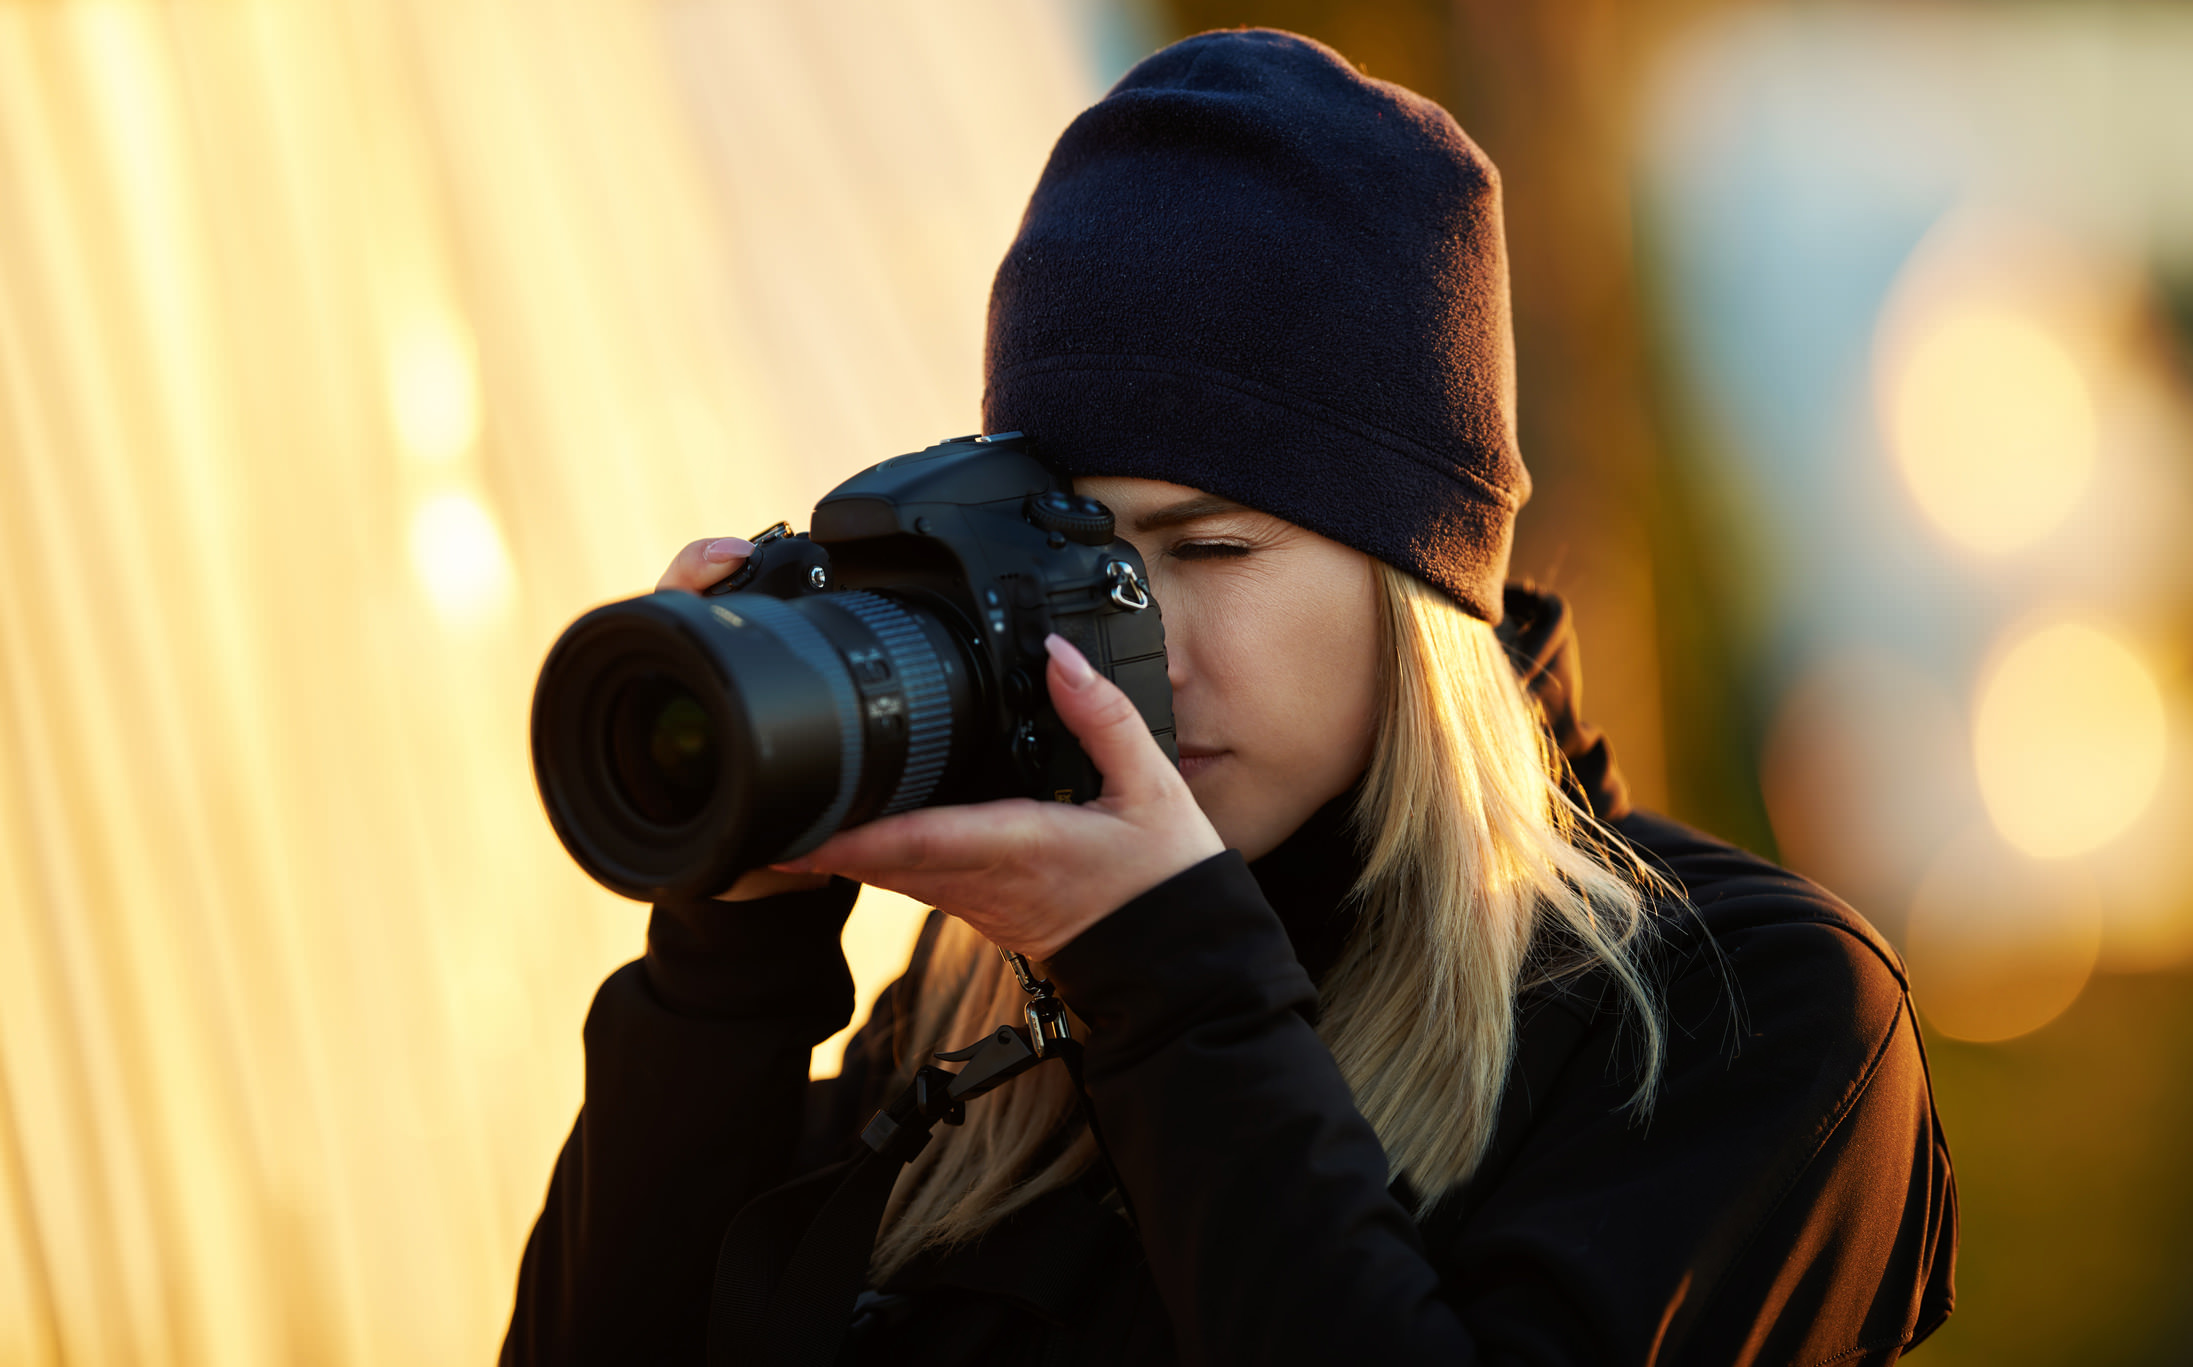 Camera Lens Terms Explained for Beginner Photographers